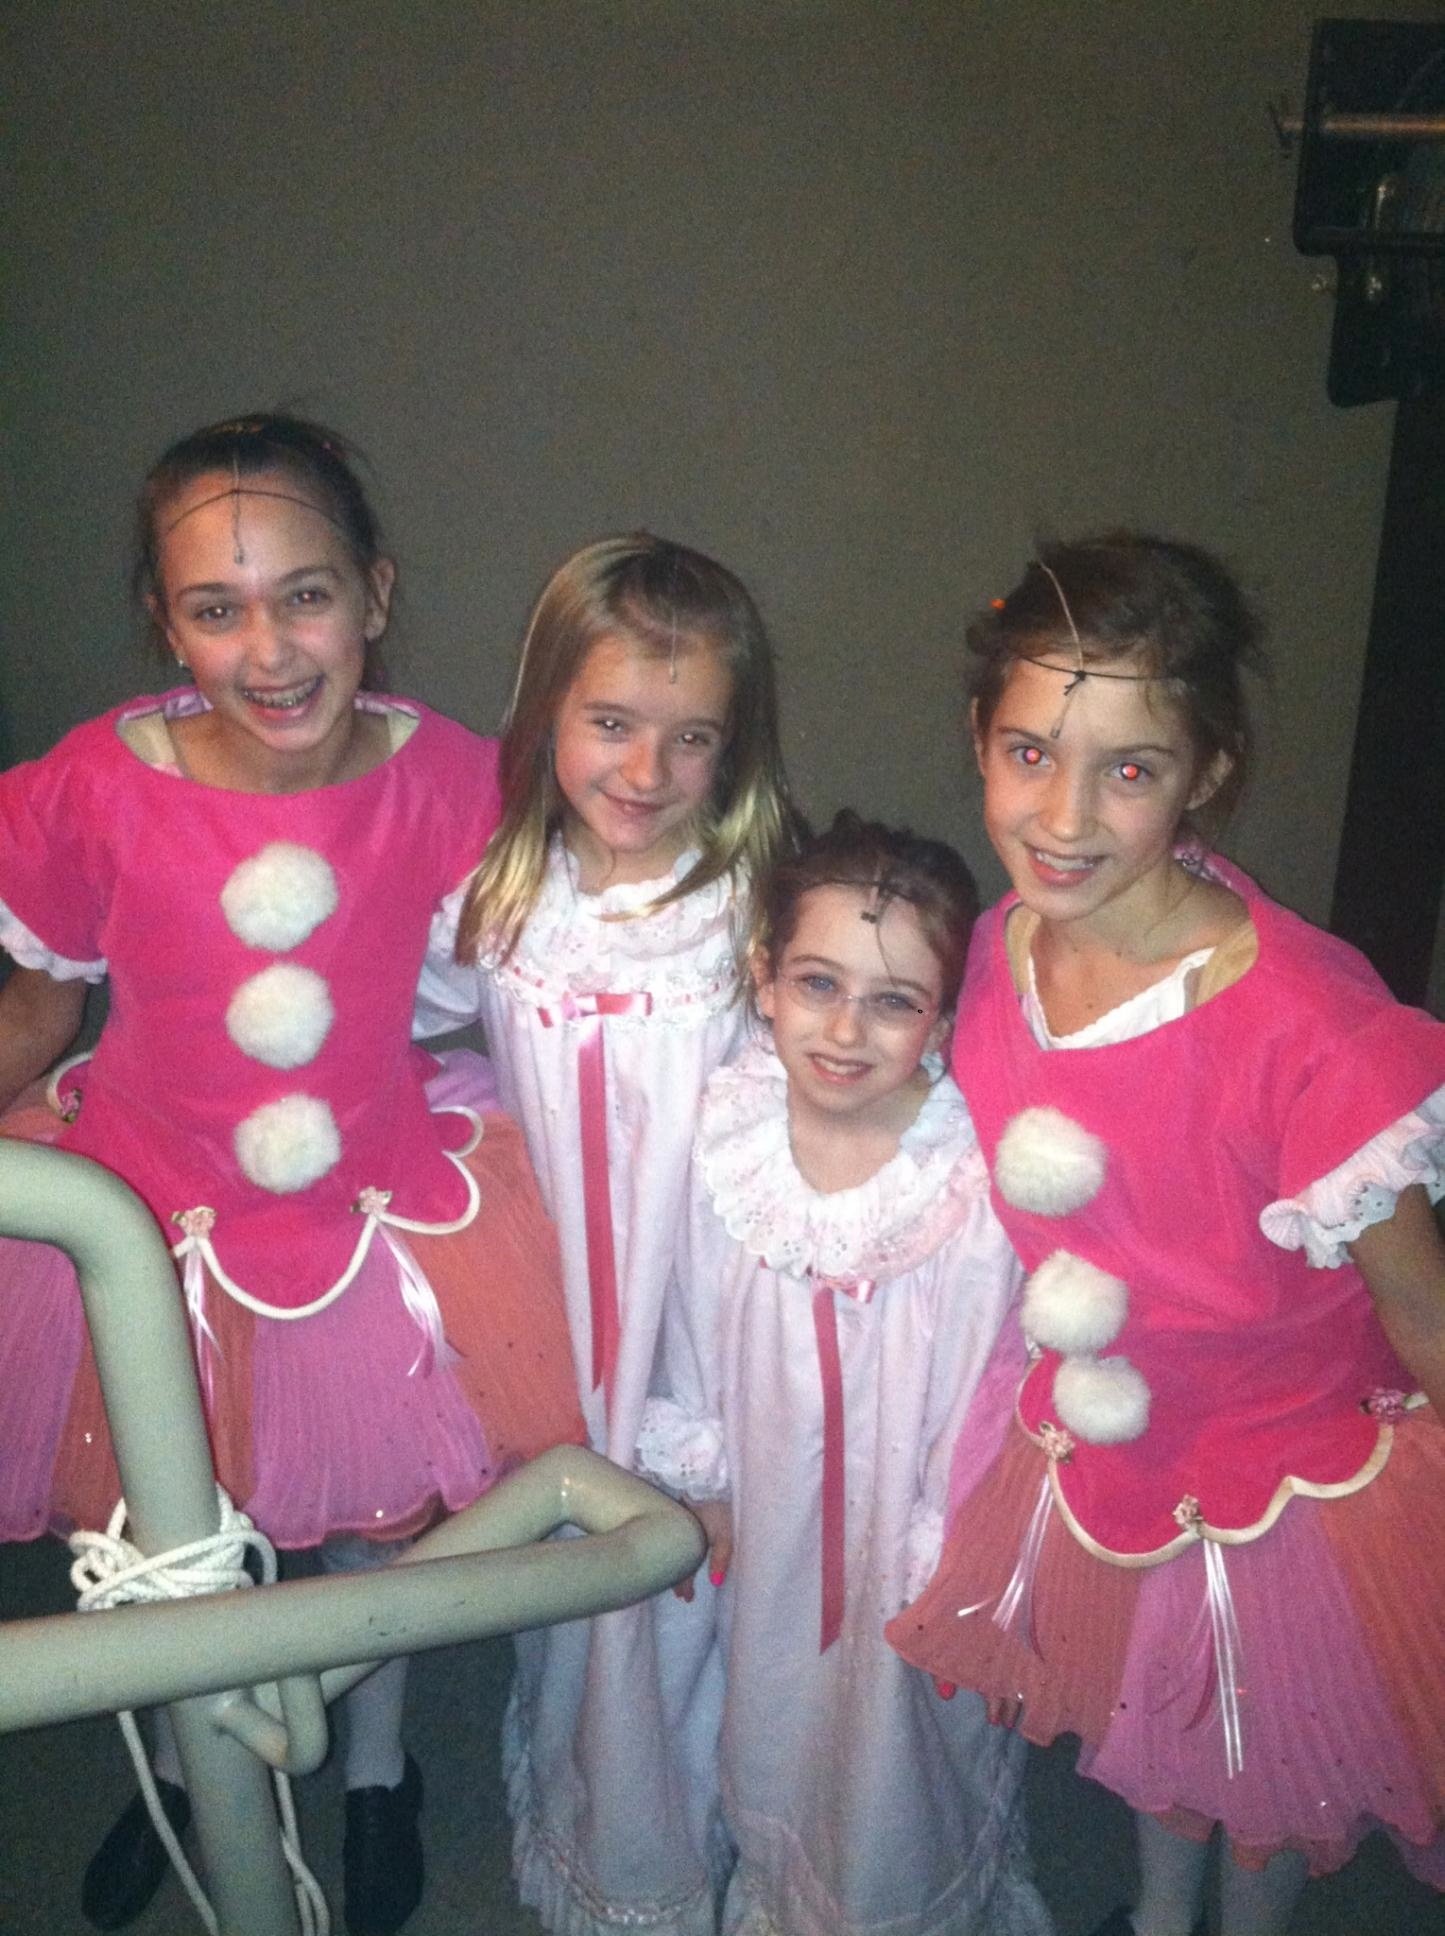 Abigail and Cast Backstage at the Grinch